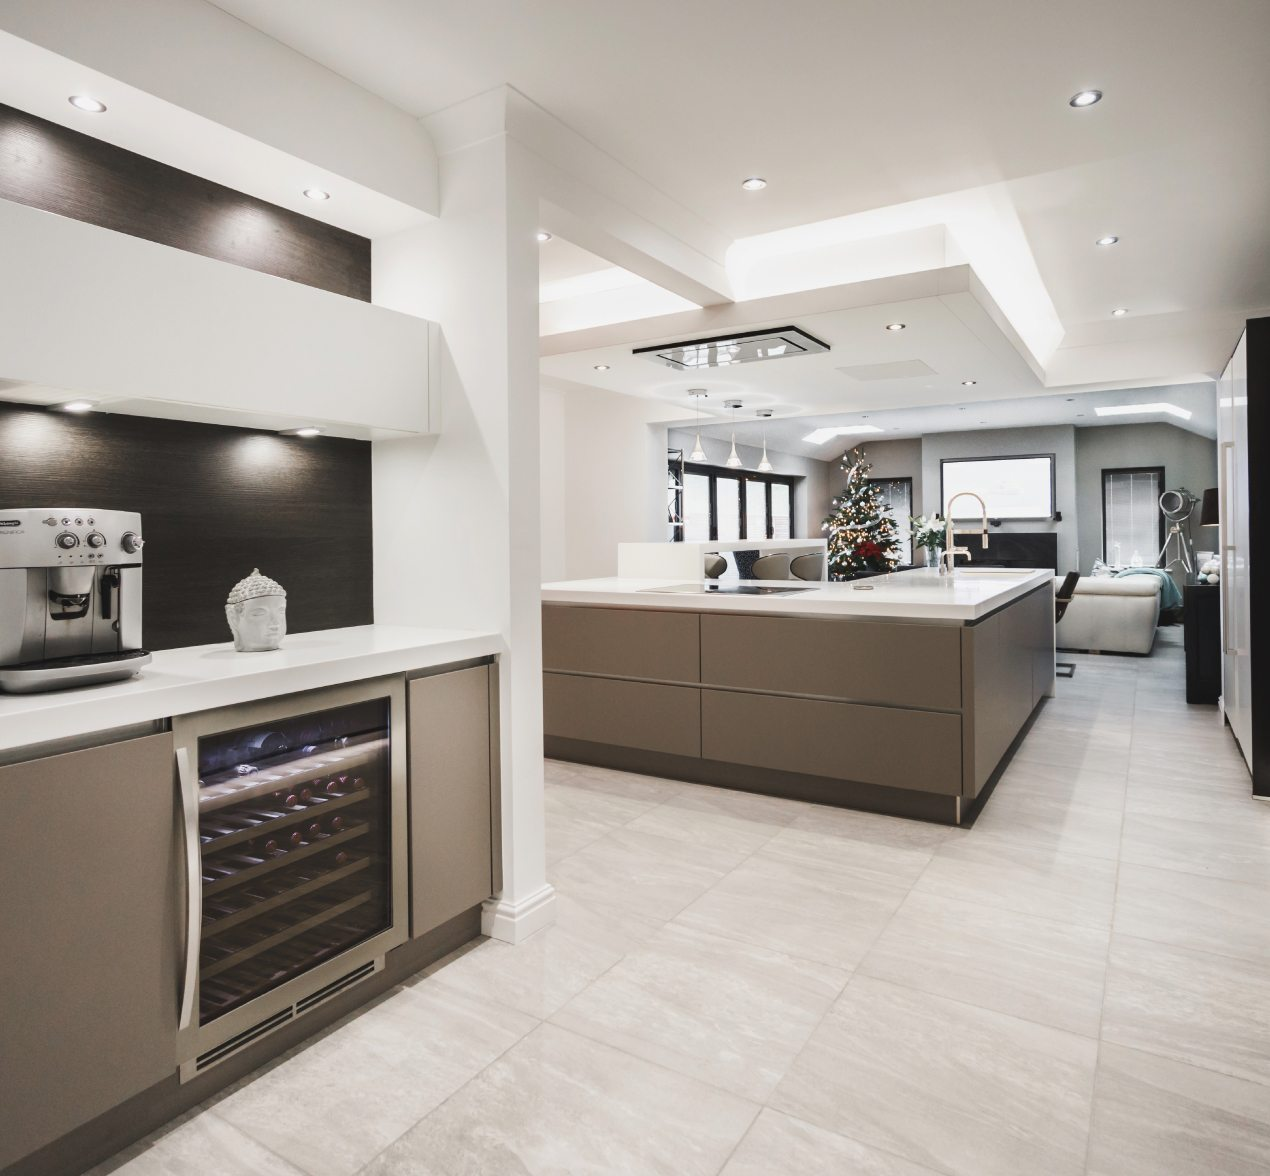 Kitchen Design Centre Hollinwood Designer Kitchen Case Study In Colne Kitchen Design Centre